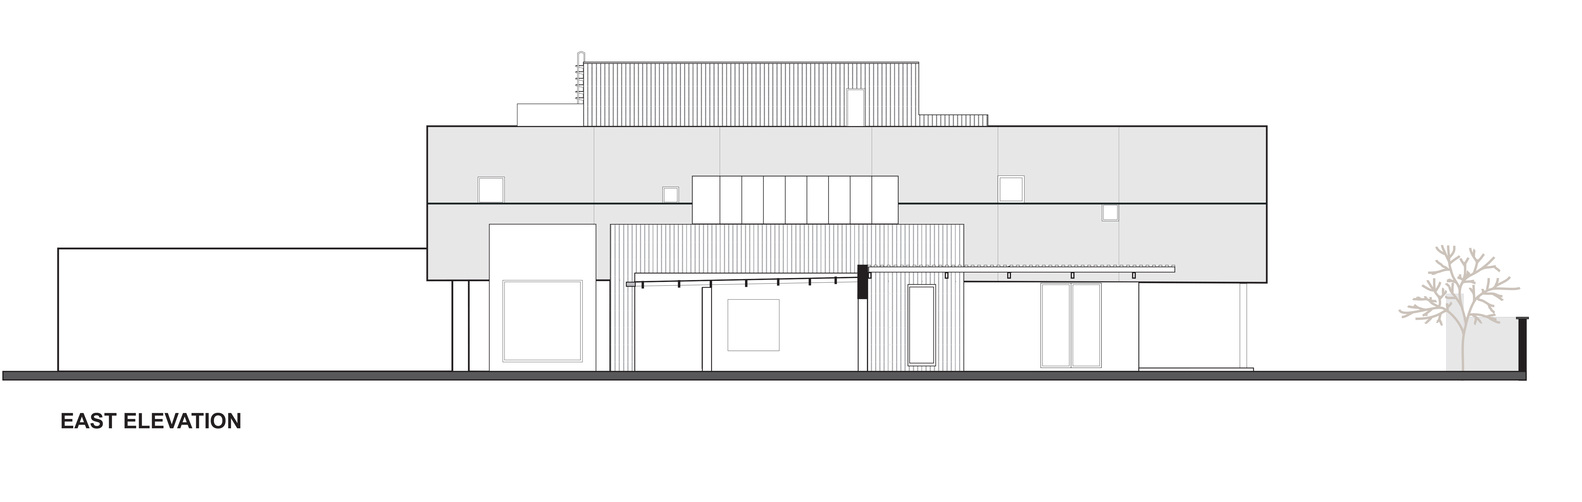 small resolution of the wolf house east elevation